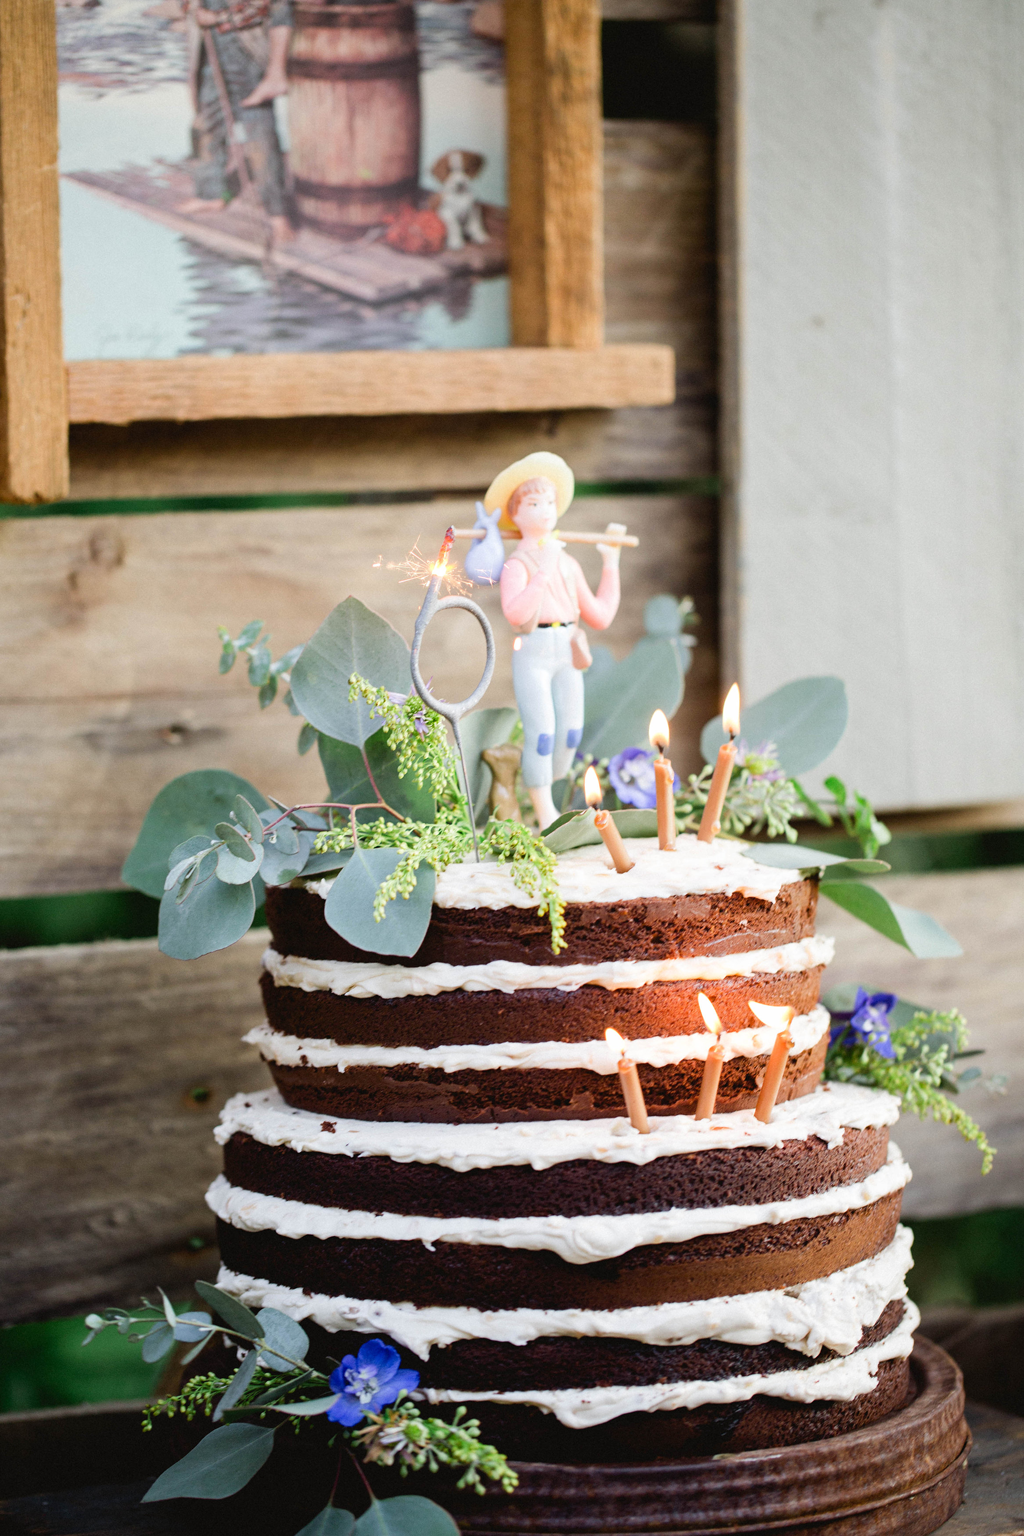 Rustic Birthday Cake with Greenery